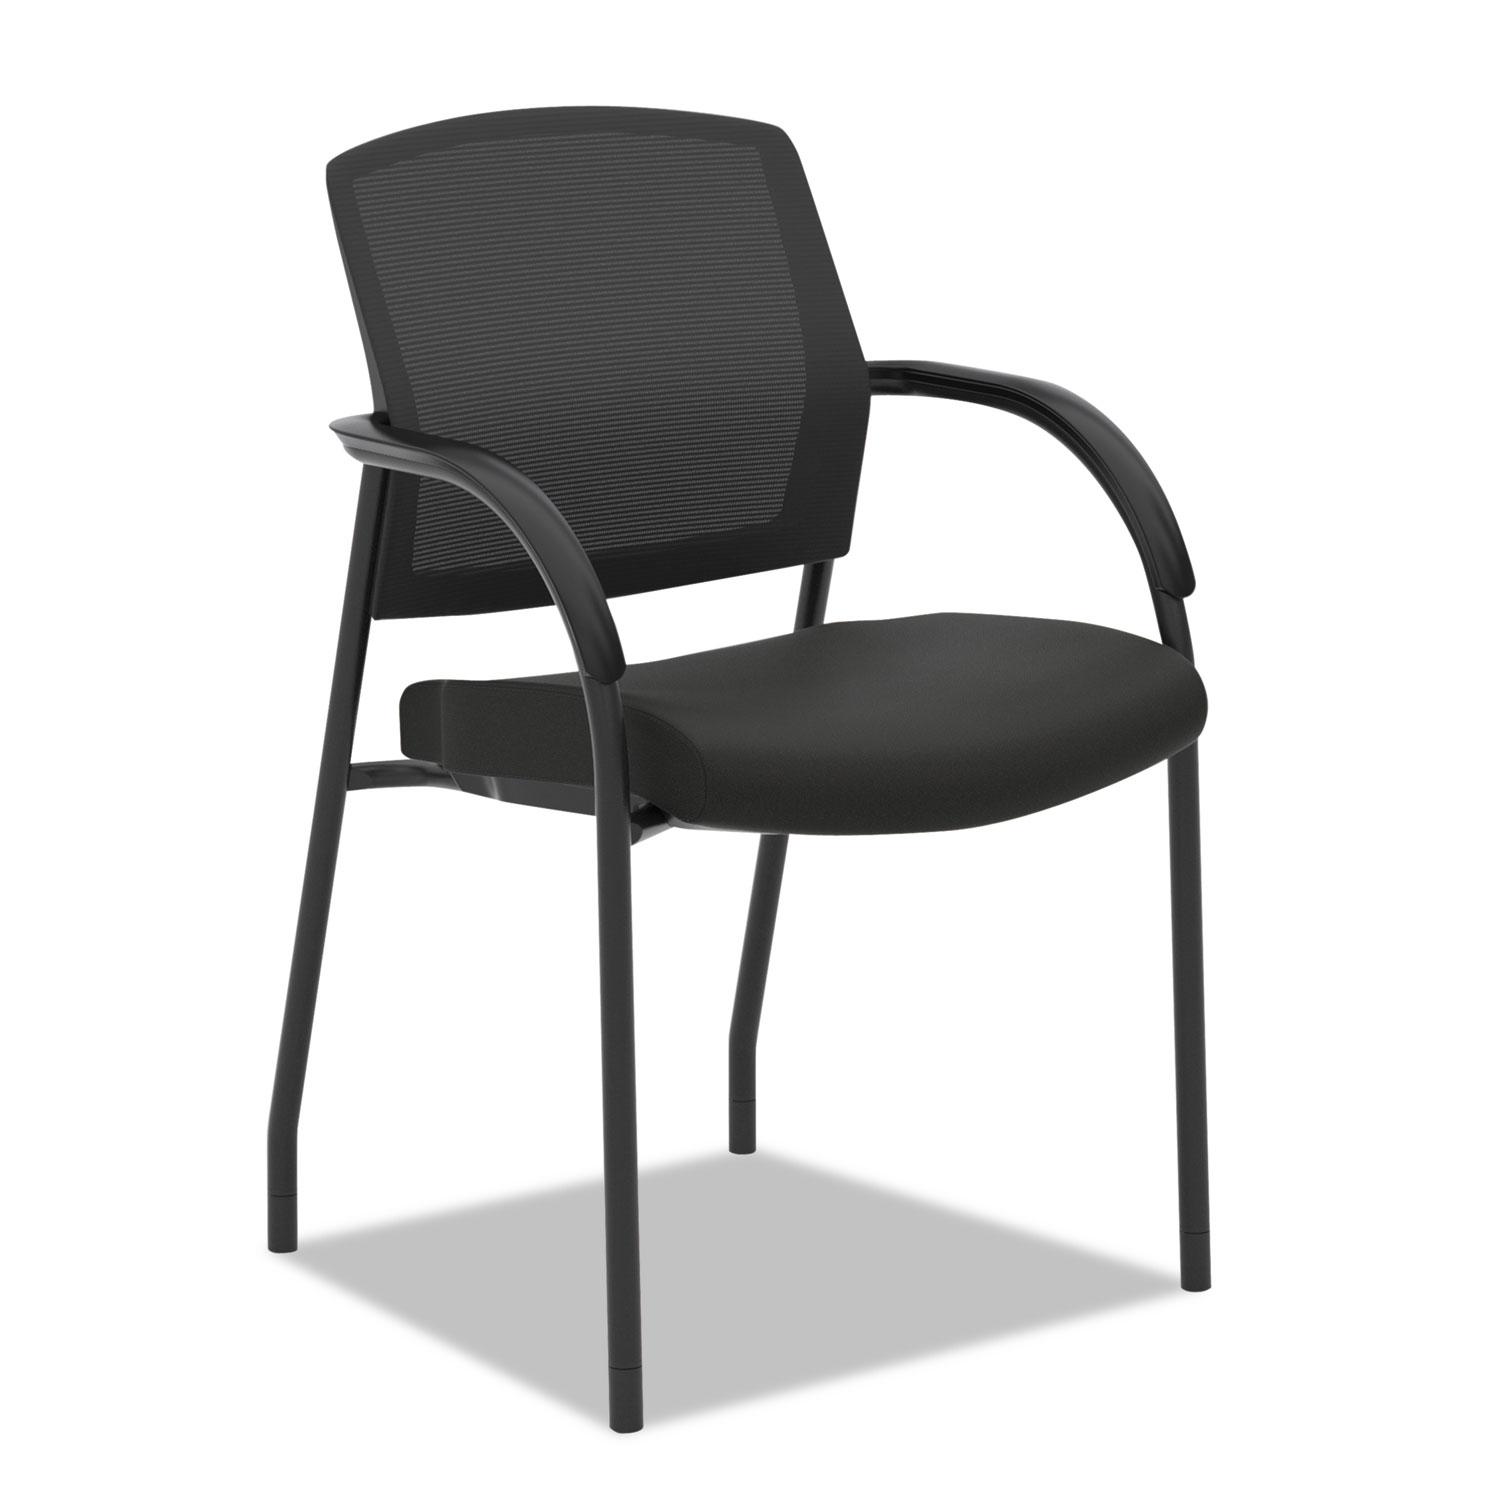 hon desk chairs ergonomic chair tailbone lota series mesh guest side by hon2285va10